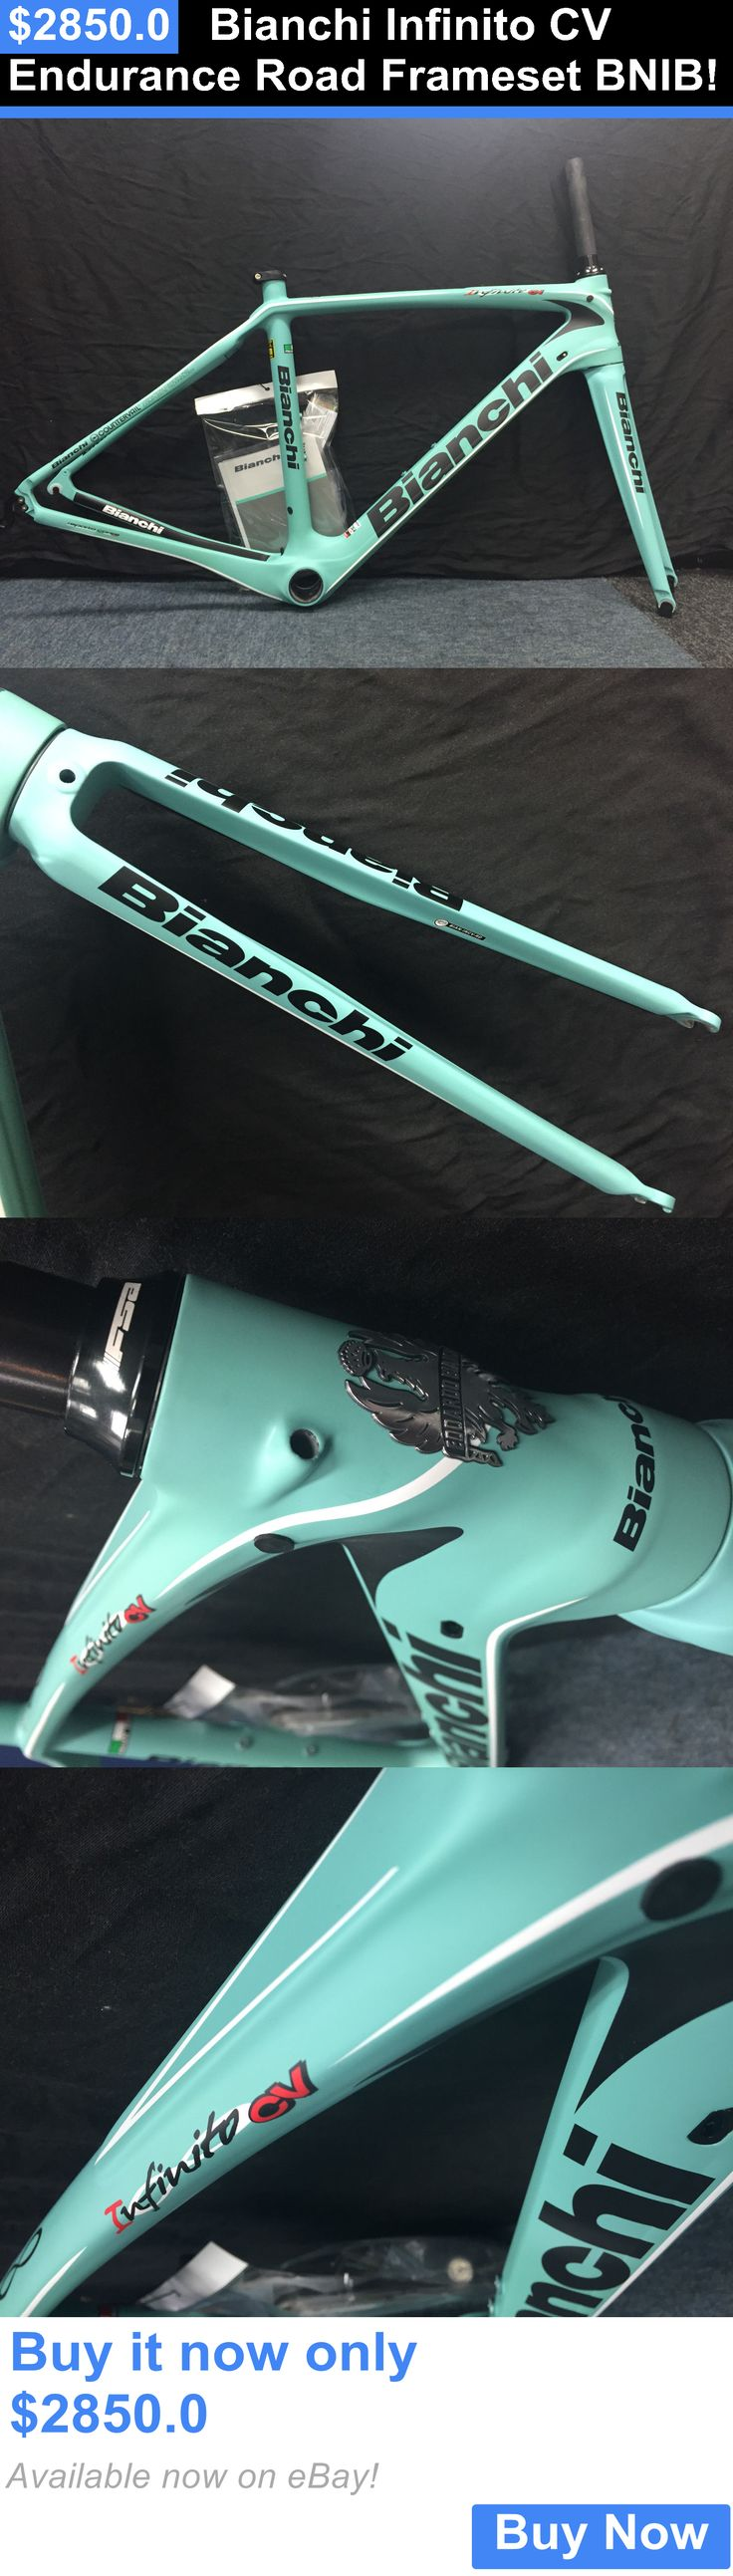 bicycle parts: Bianchi Infinito Cv Endurance Road Frameset Bnib! BUY IT NOW ONLY: $2850.0